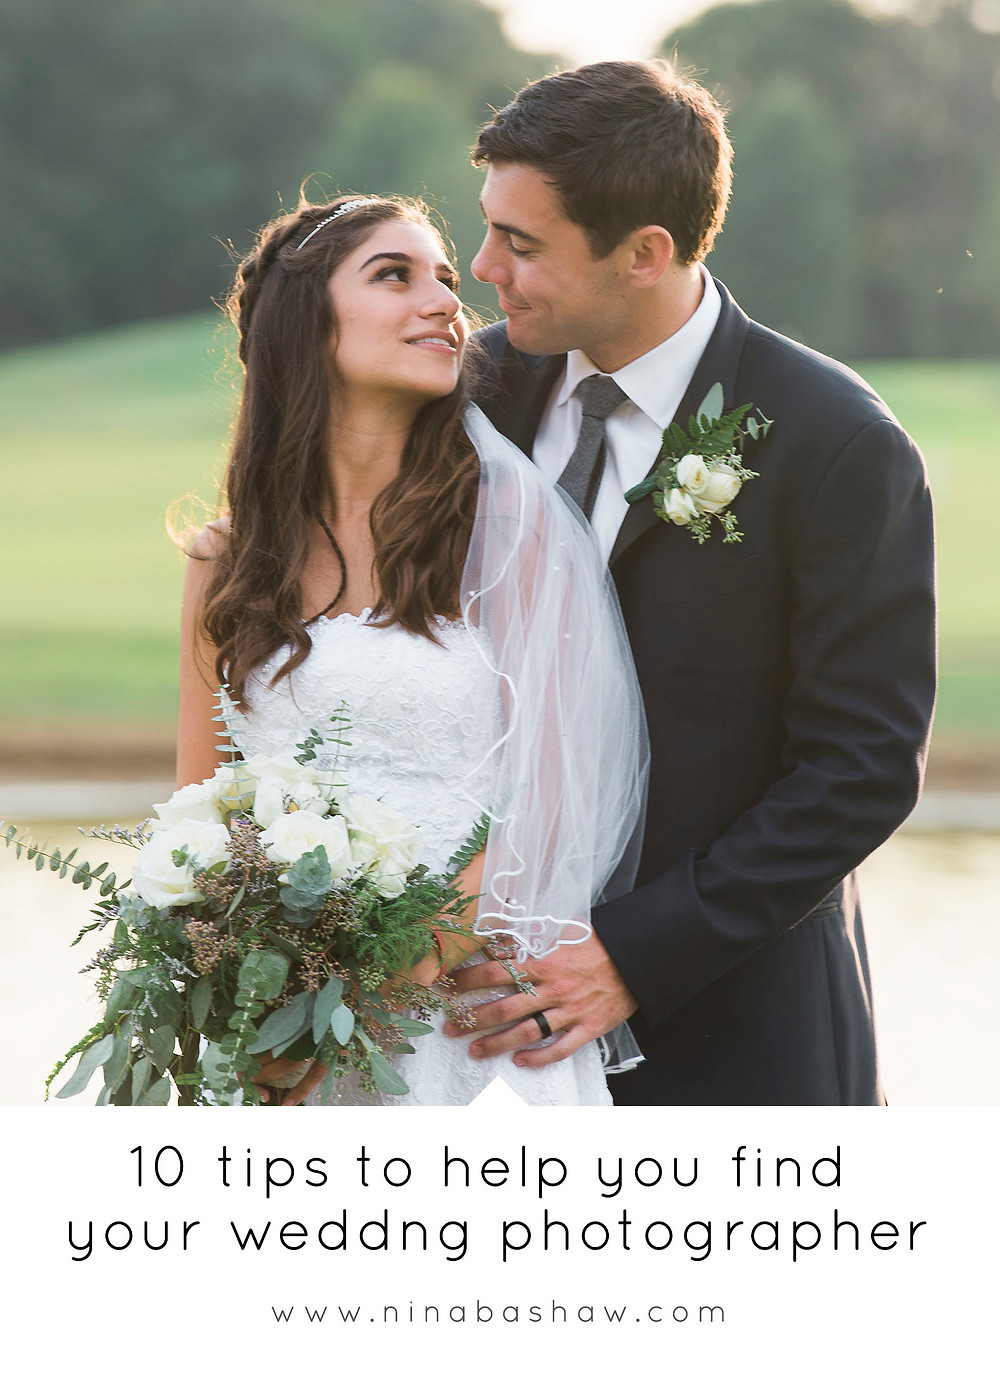 10 tips to help you find the perfect wedding photographer